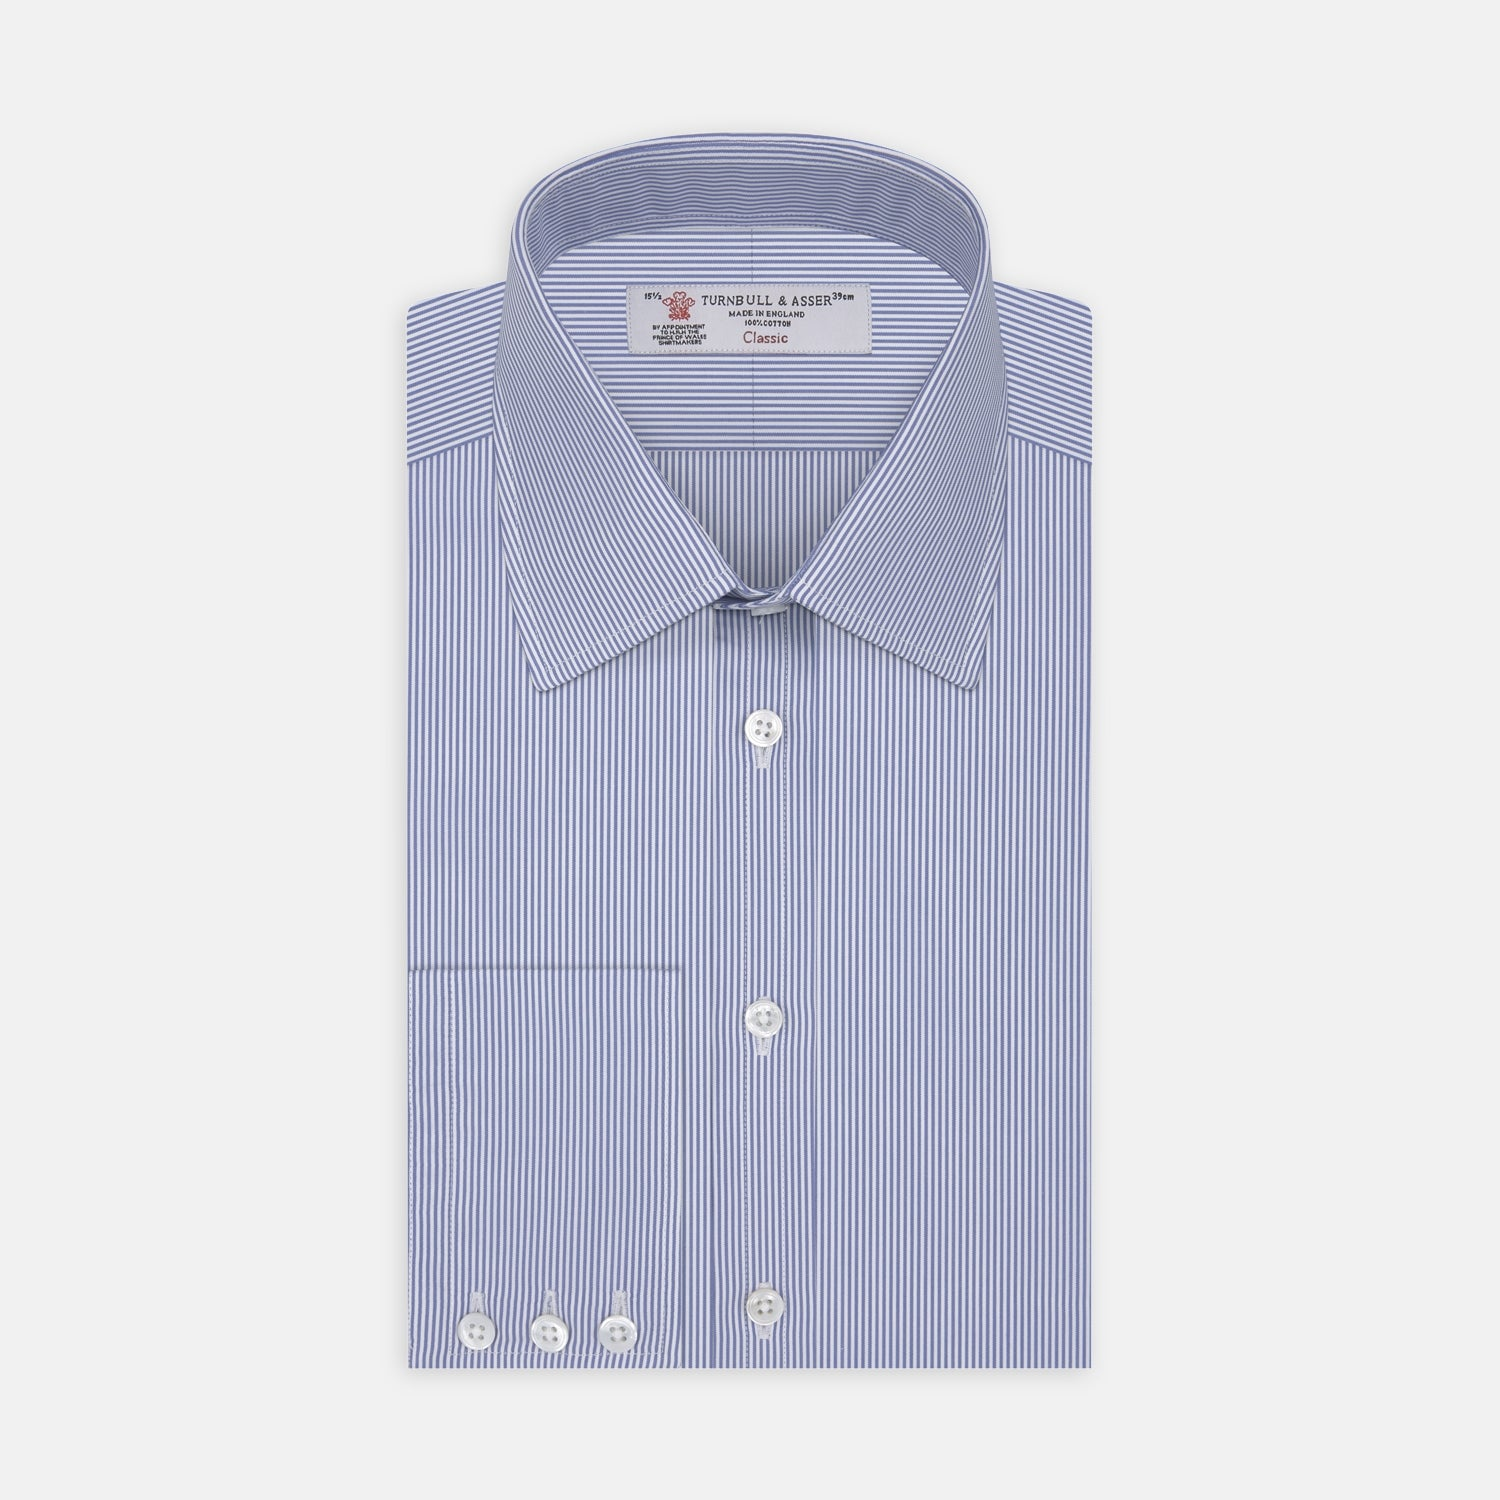 Blue Fine Bengal Stripe Shirt with T&A Collar and 3-Button Cuffs